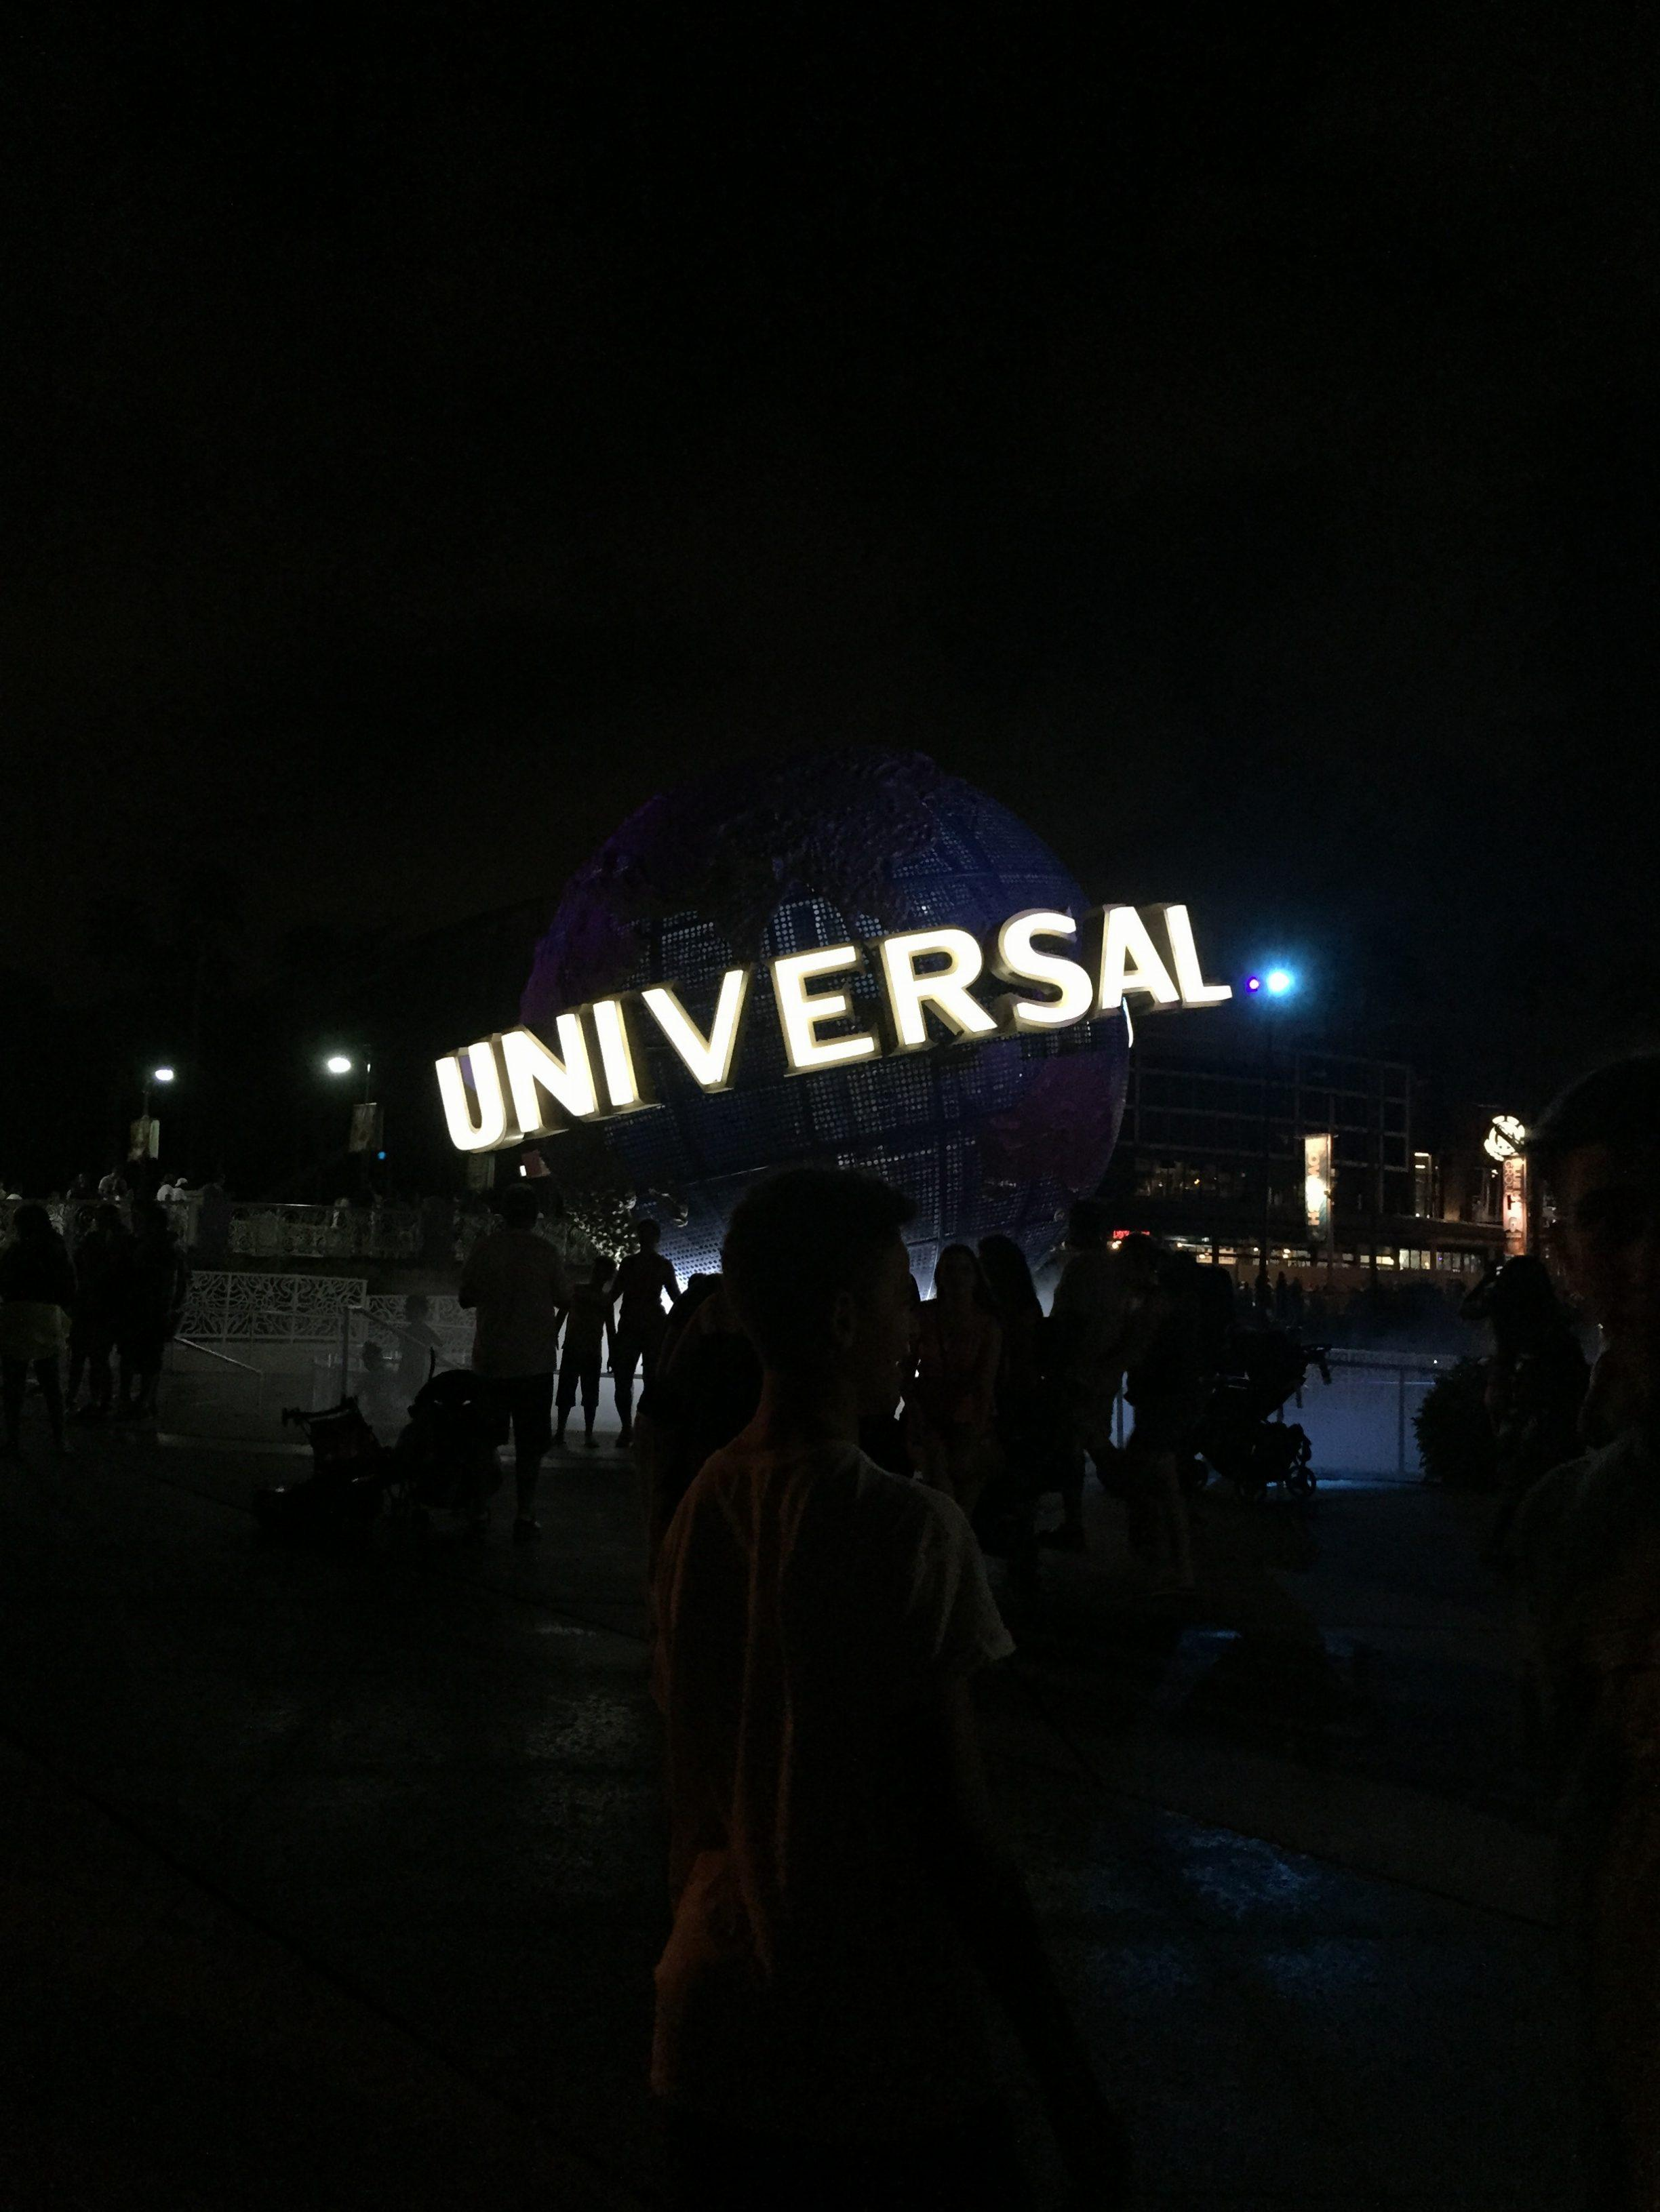 HALLOWEEN HORROR NIGHTS: Take a trip to Universal Studios and enjoy Halloween Horror Nights while you and zombies roam Diagon Alley and The Mummy Ride.